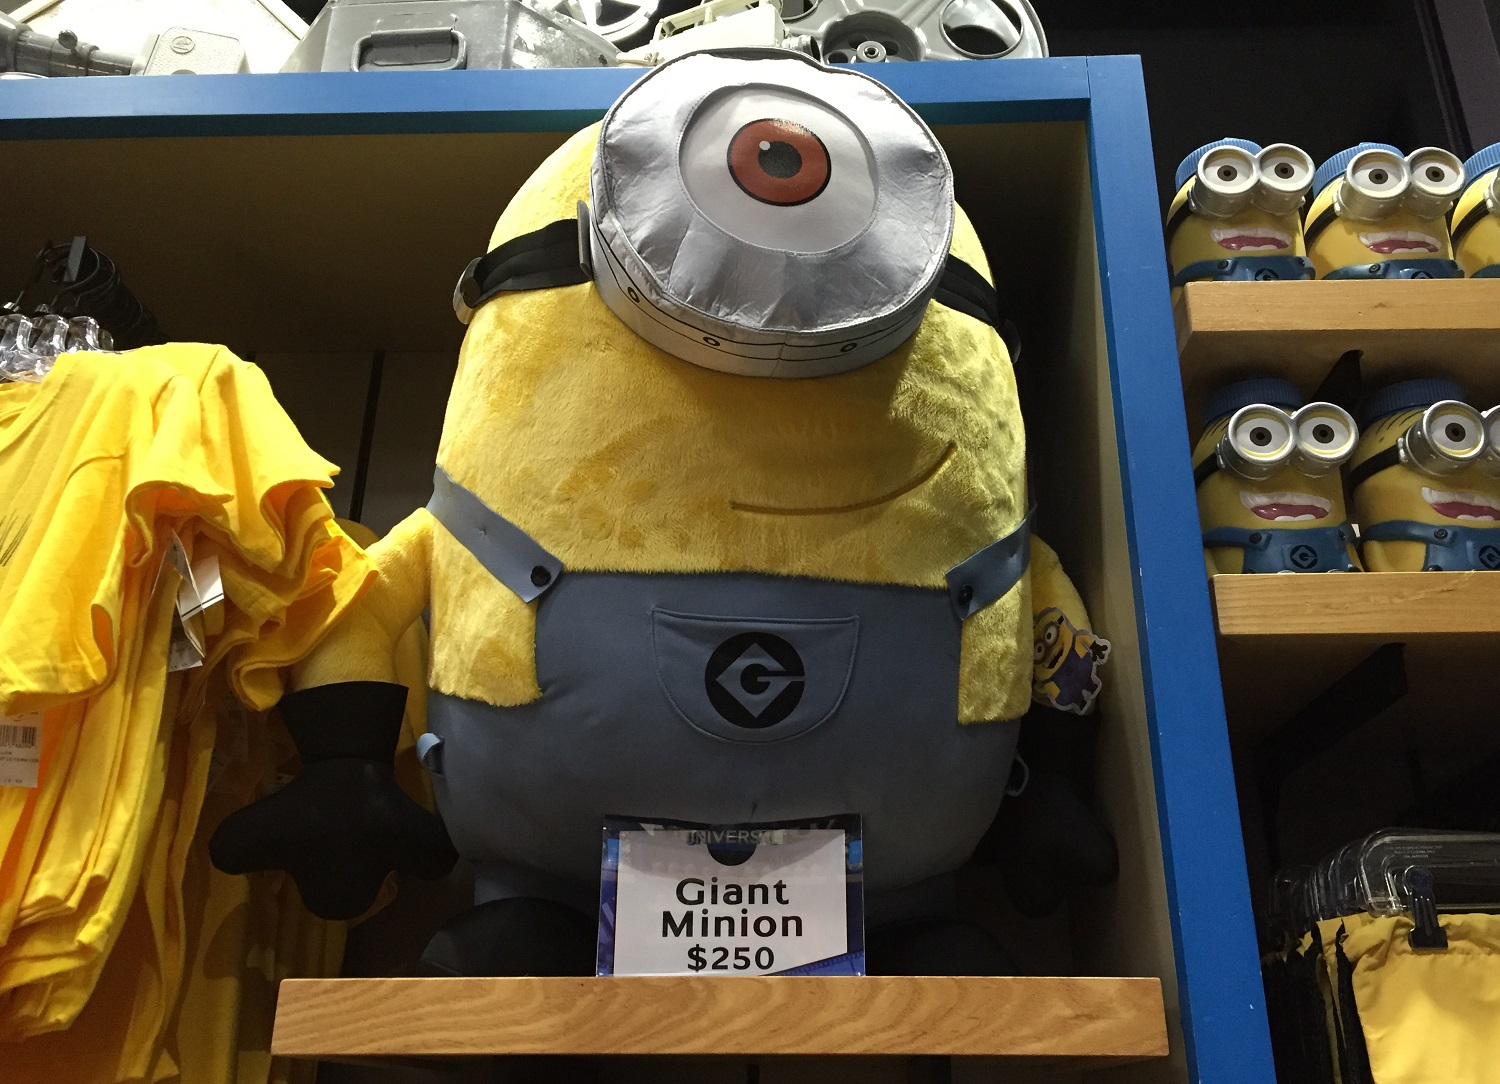 This Giant Minion always gets a lot of attention in the Universal Studios Store in CityWalk Orlando.